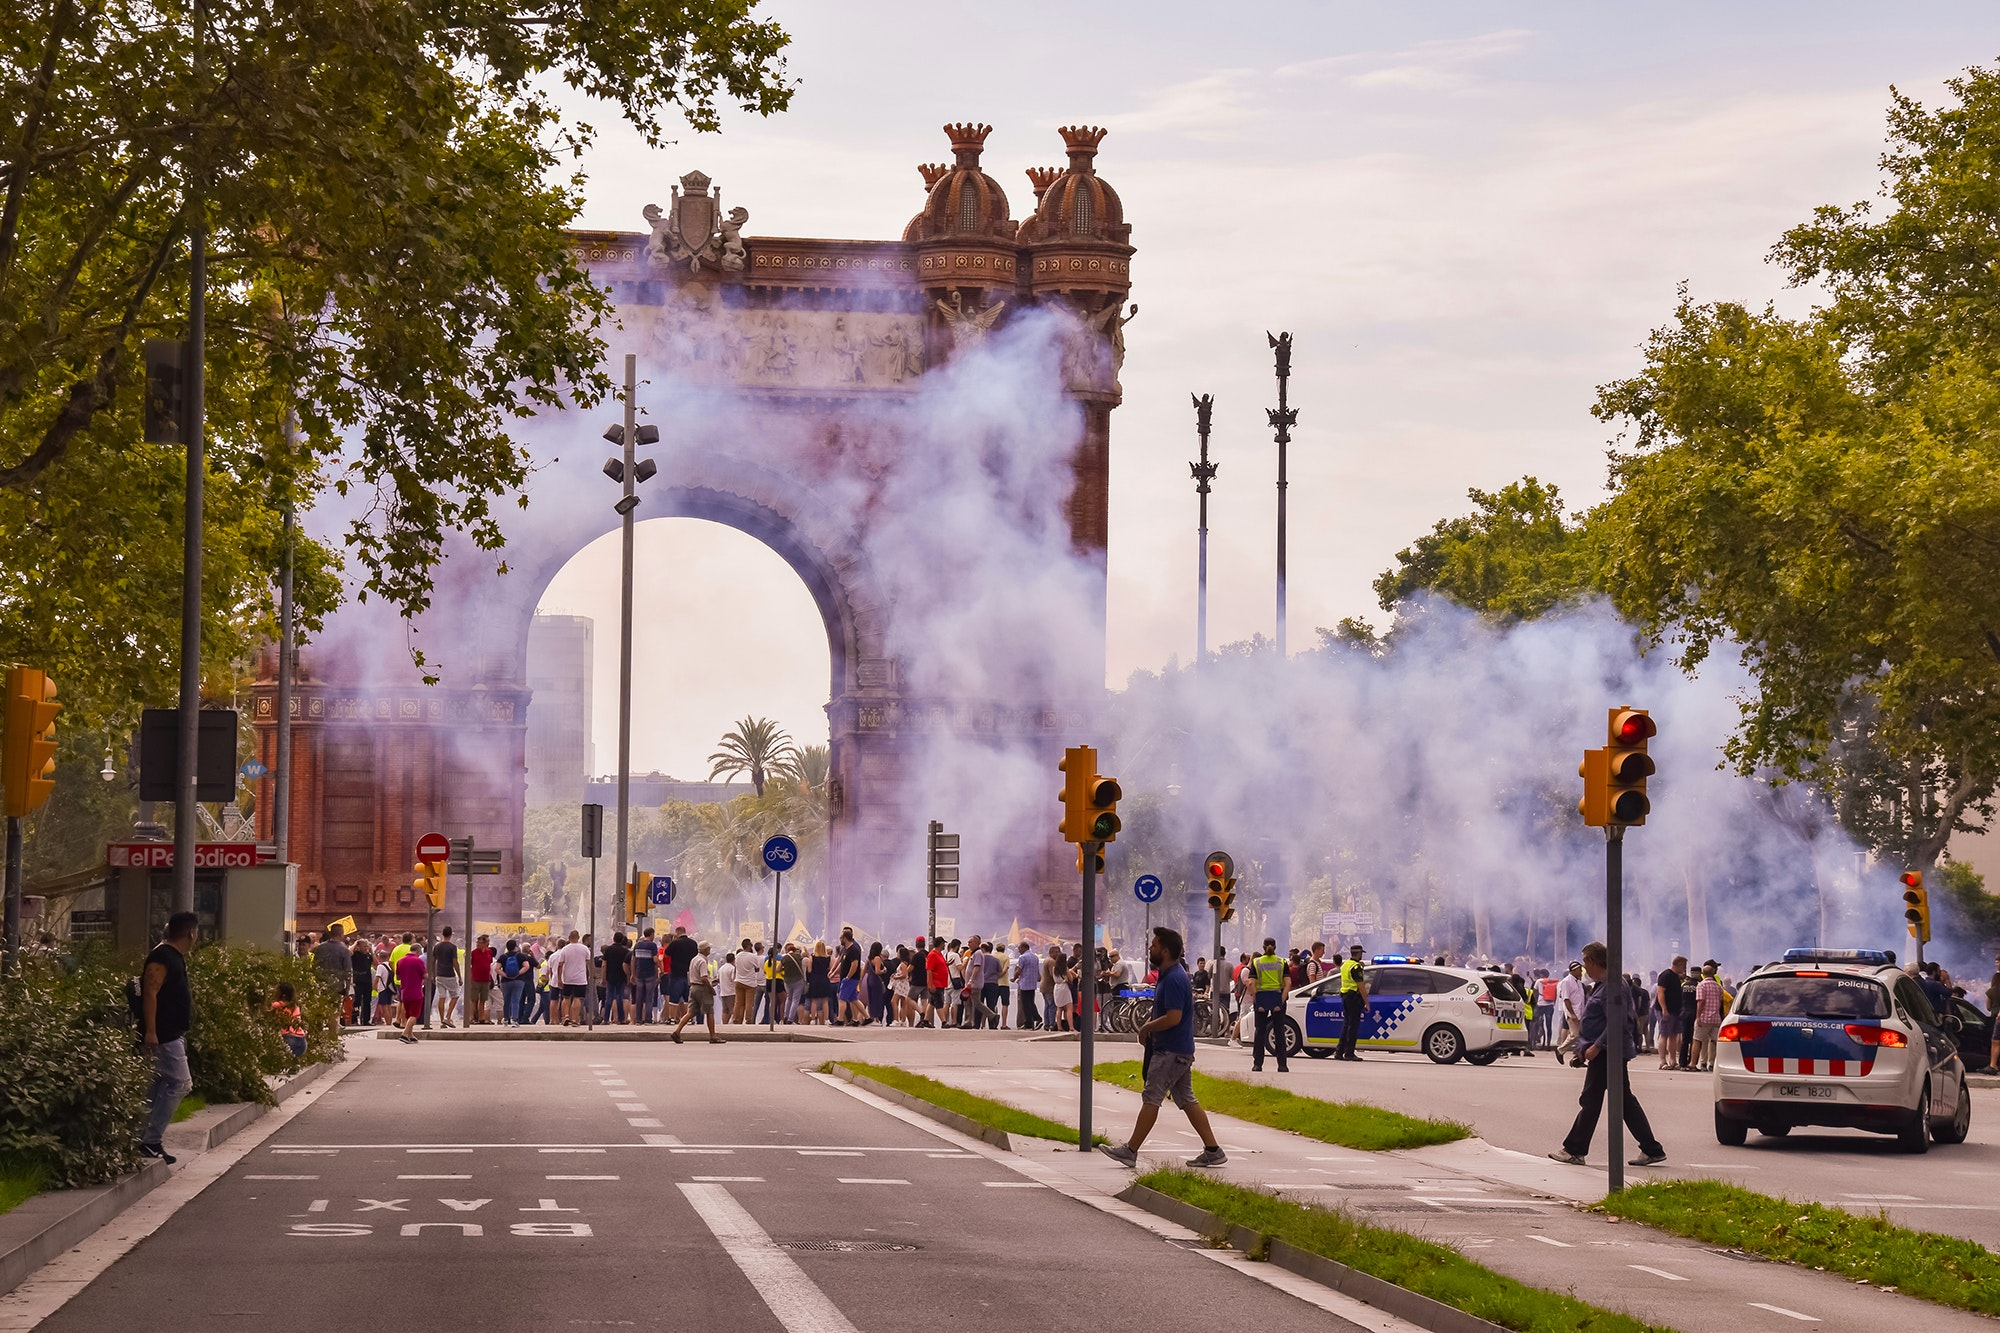 Taxi drivers protest against Uber in front of Barcelona's Arc de Triomf.